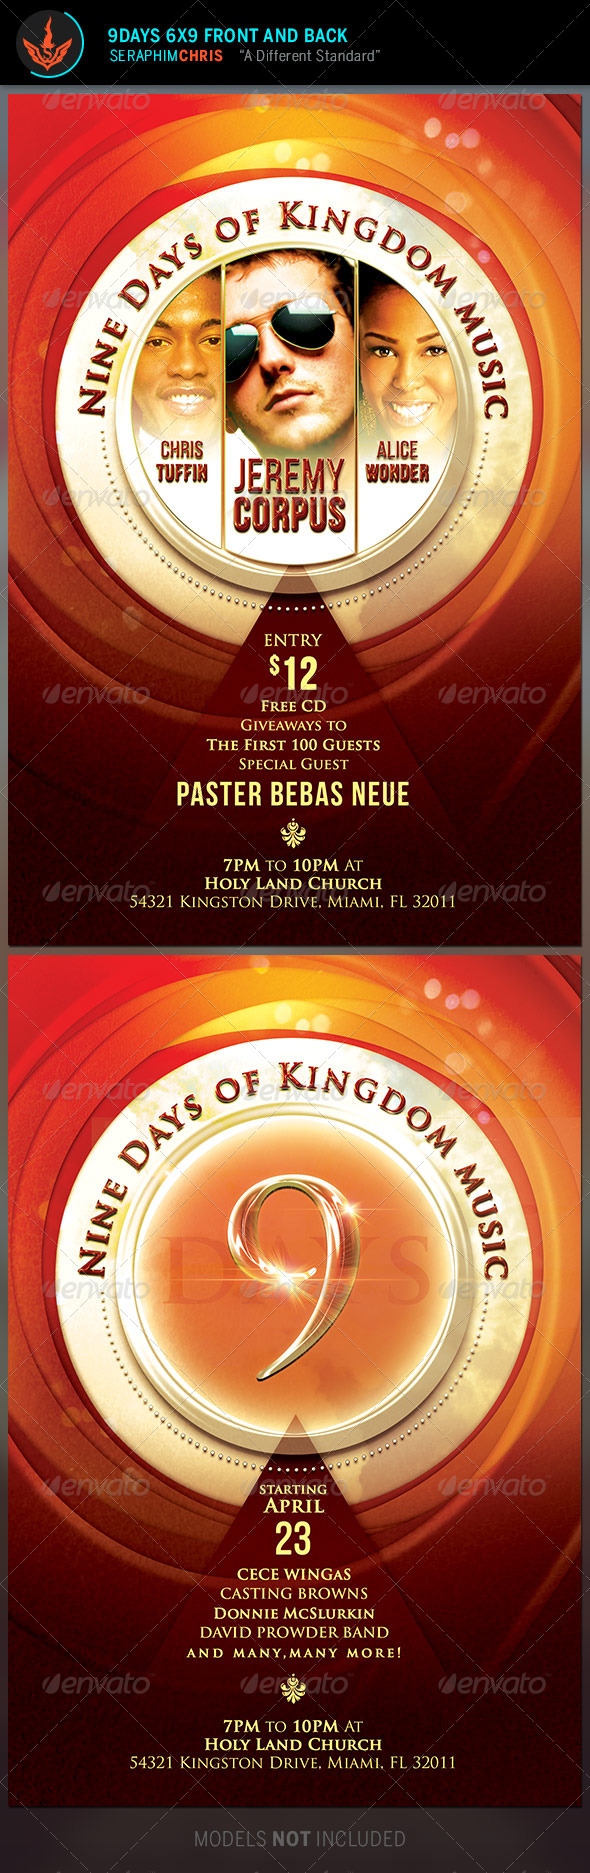 Gospel Music Flyer Template - Church Flyers